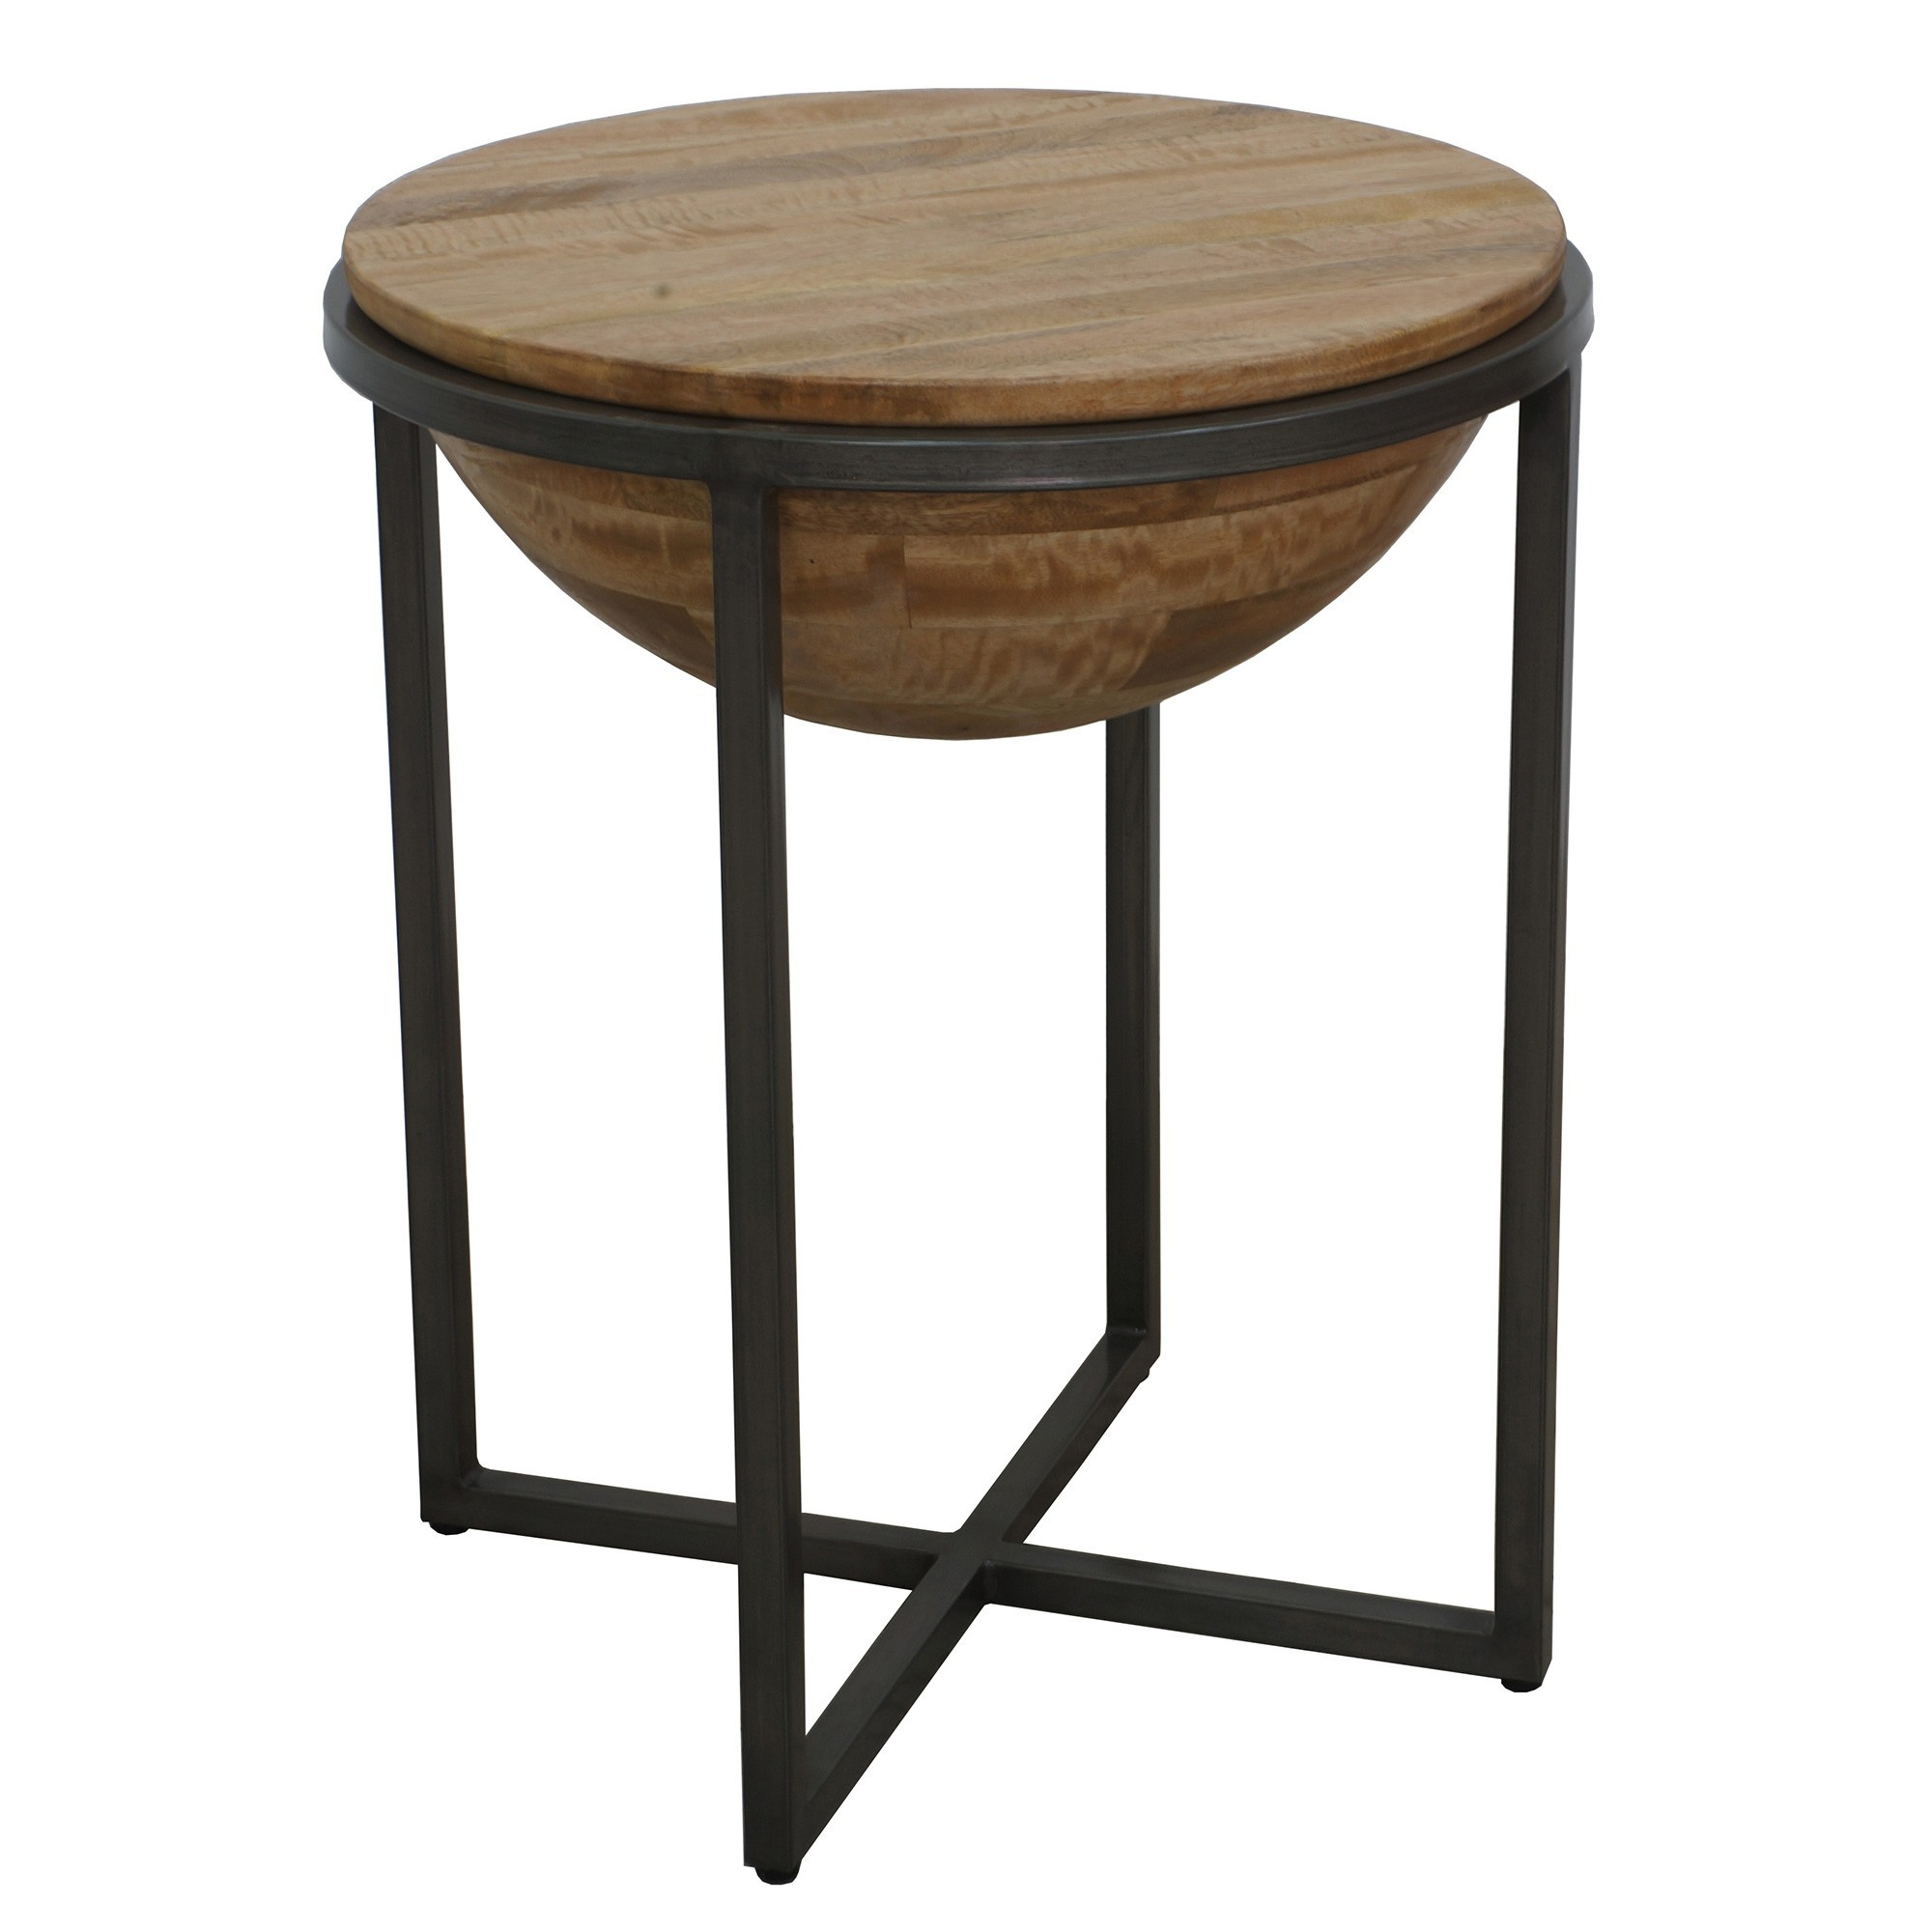 Bodet Mango Wood & Metal Round Side Table